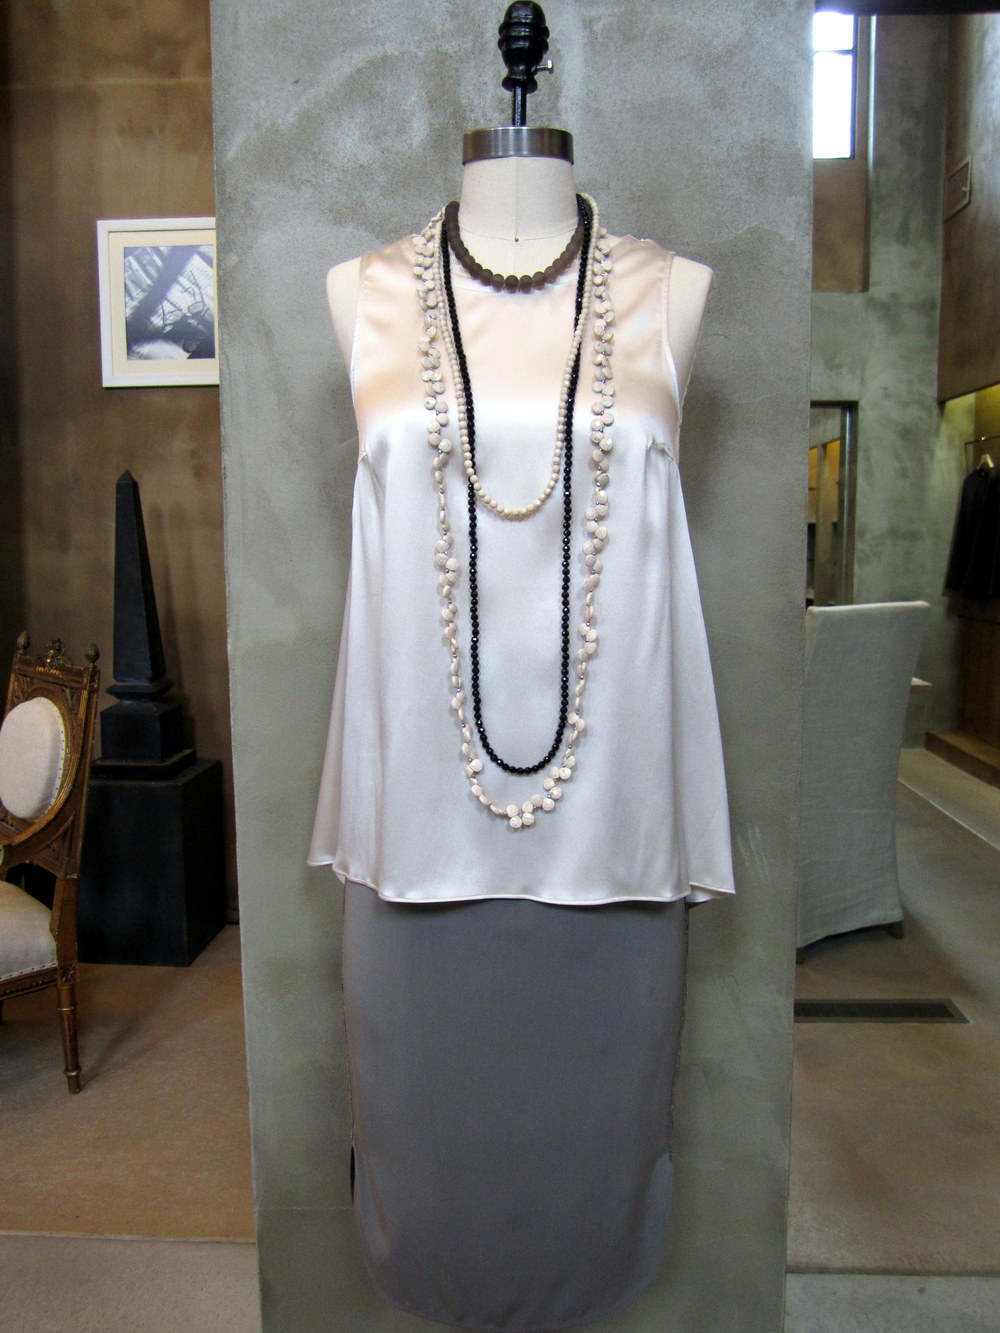 Brunello Cucinelli Reversible Sleeveless Silk Top with Monili Back Detail. Vanilla. $795. Available in Medium, Large and X-Large. Silk Pull-On Skirt with Monili Athletic Detail. Military. $1210. Available in 4, 6, 8. Double Strand Long Necklace in River Stone, Black Agate and Smoky Sand. $1150. Long River Stone Necklace. Vanilla. $1195. Made in Italy.